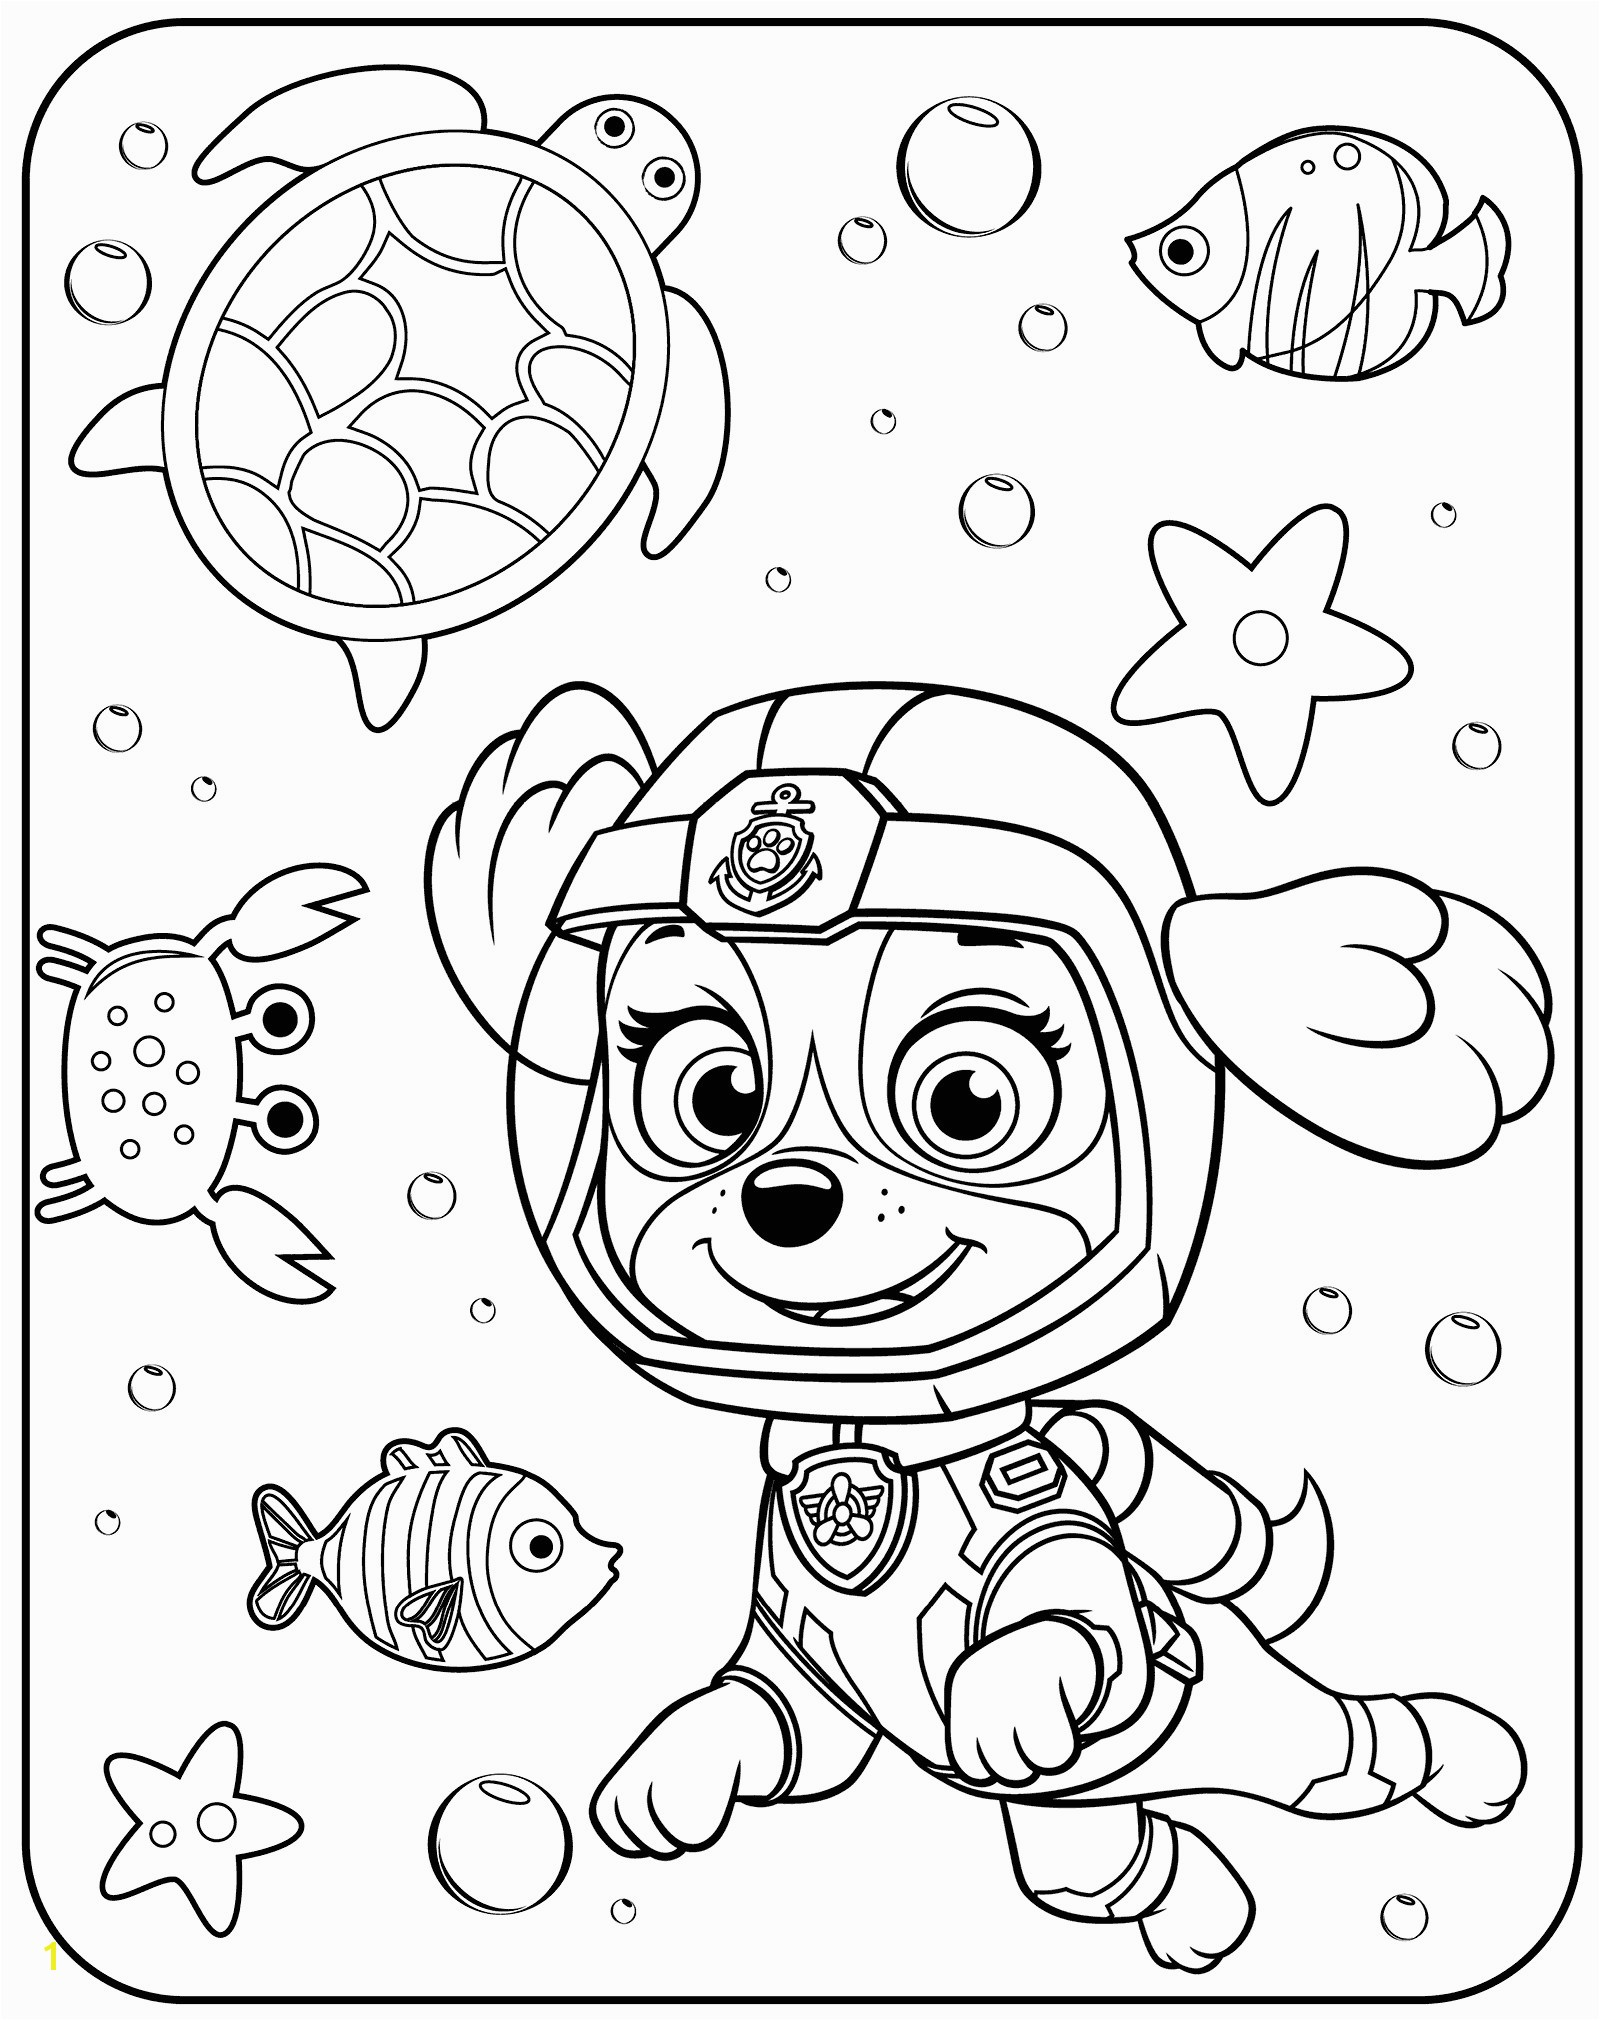 Skye Paw Patrol Coloring Pages Coloring Pages